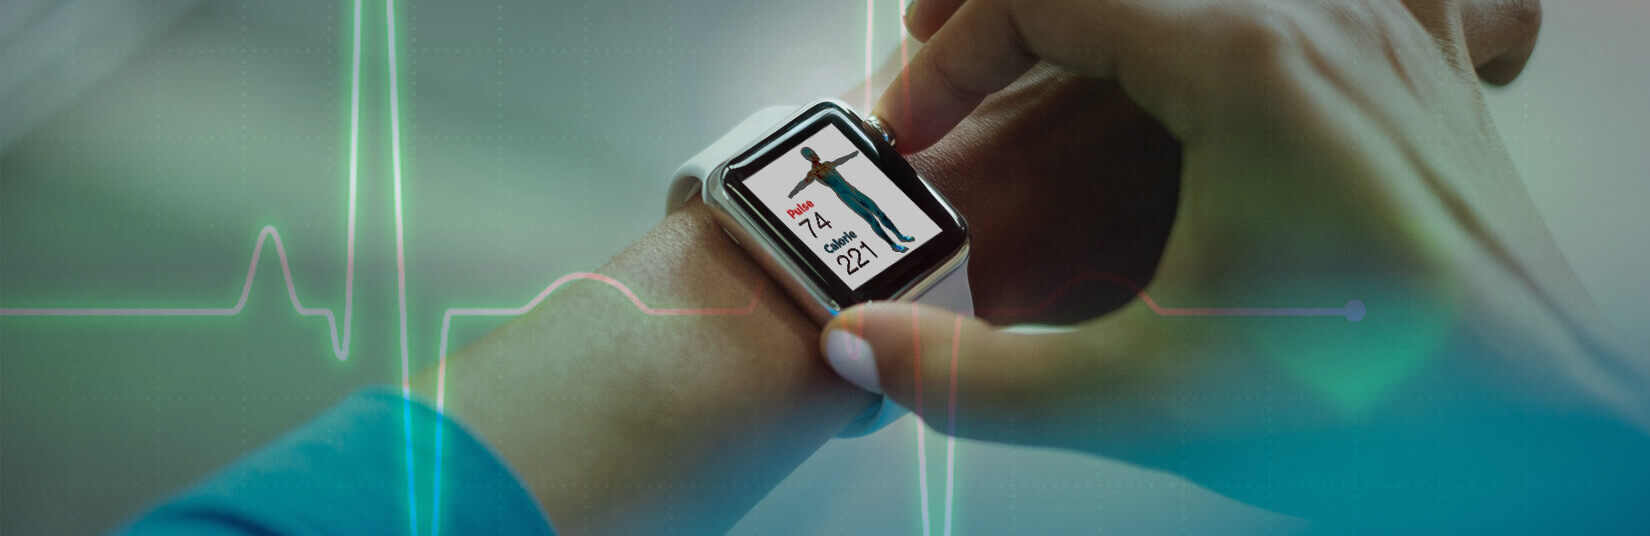 Rise of Wearables and future of Wearable technology